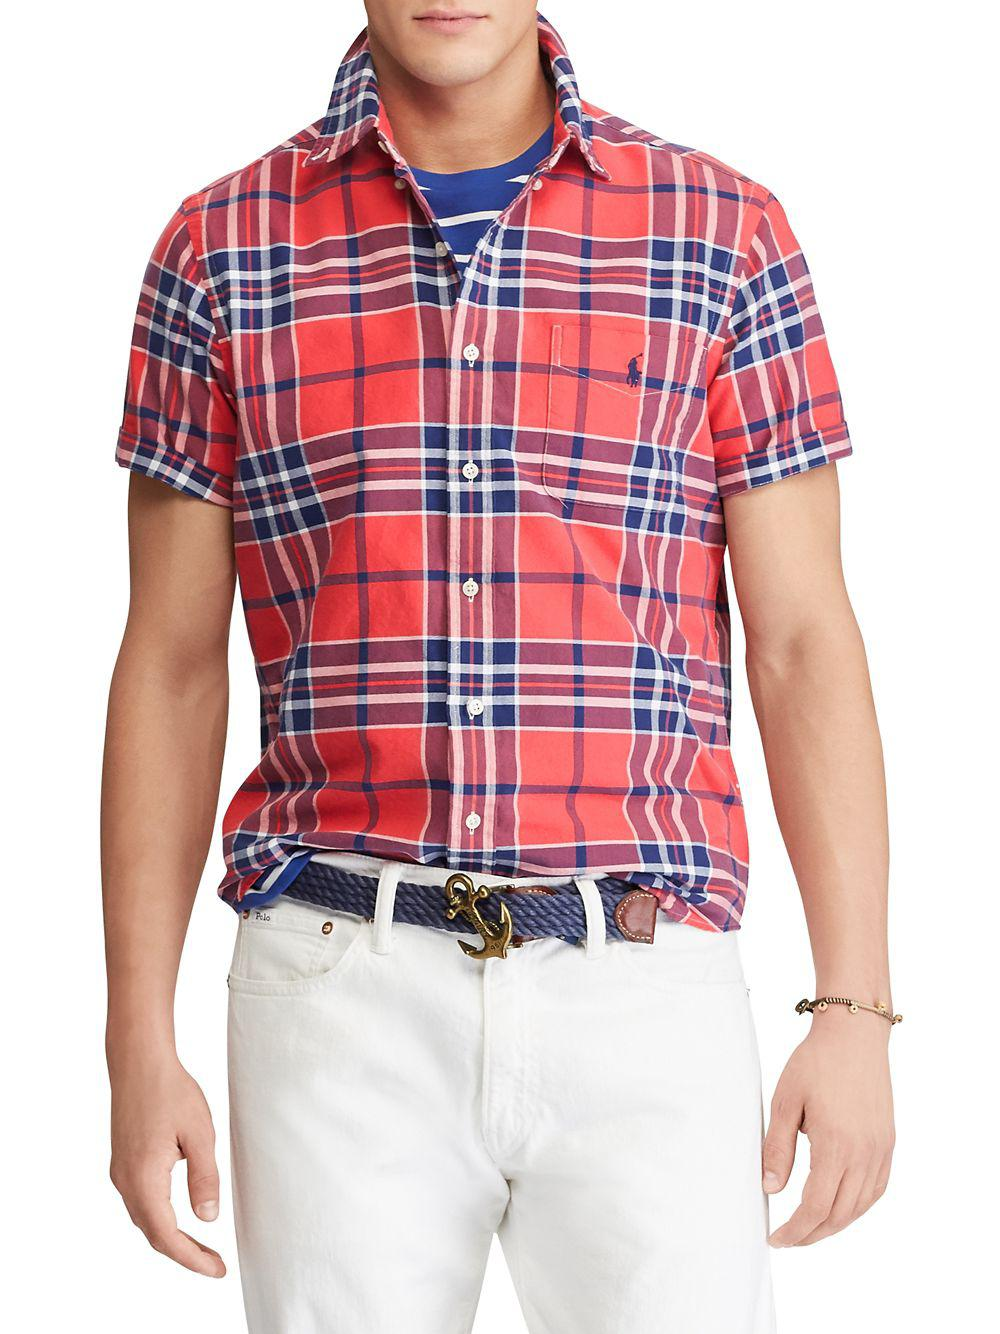 c5075d96b23 Lyst - Polo Ralph Lauren Classic-fit Plaid Oxford Shirt in Red for Men